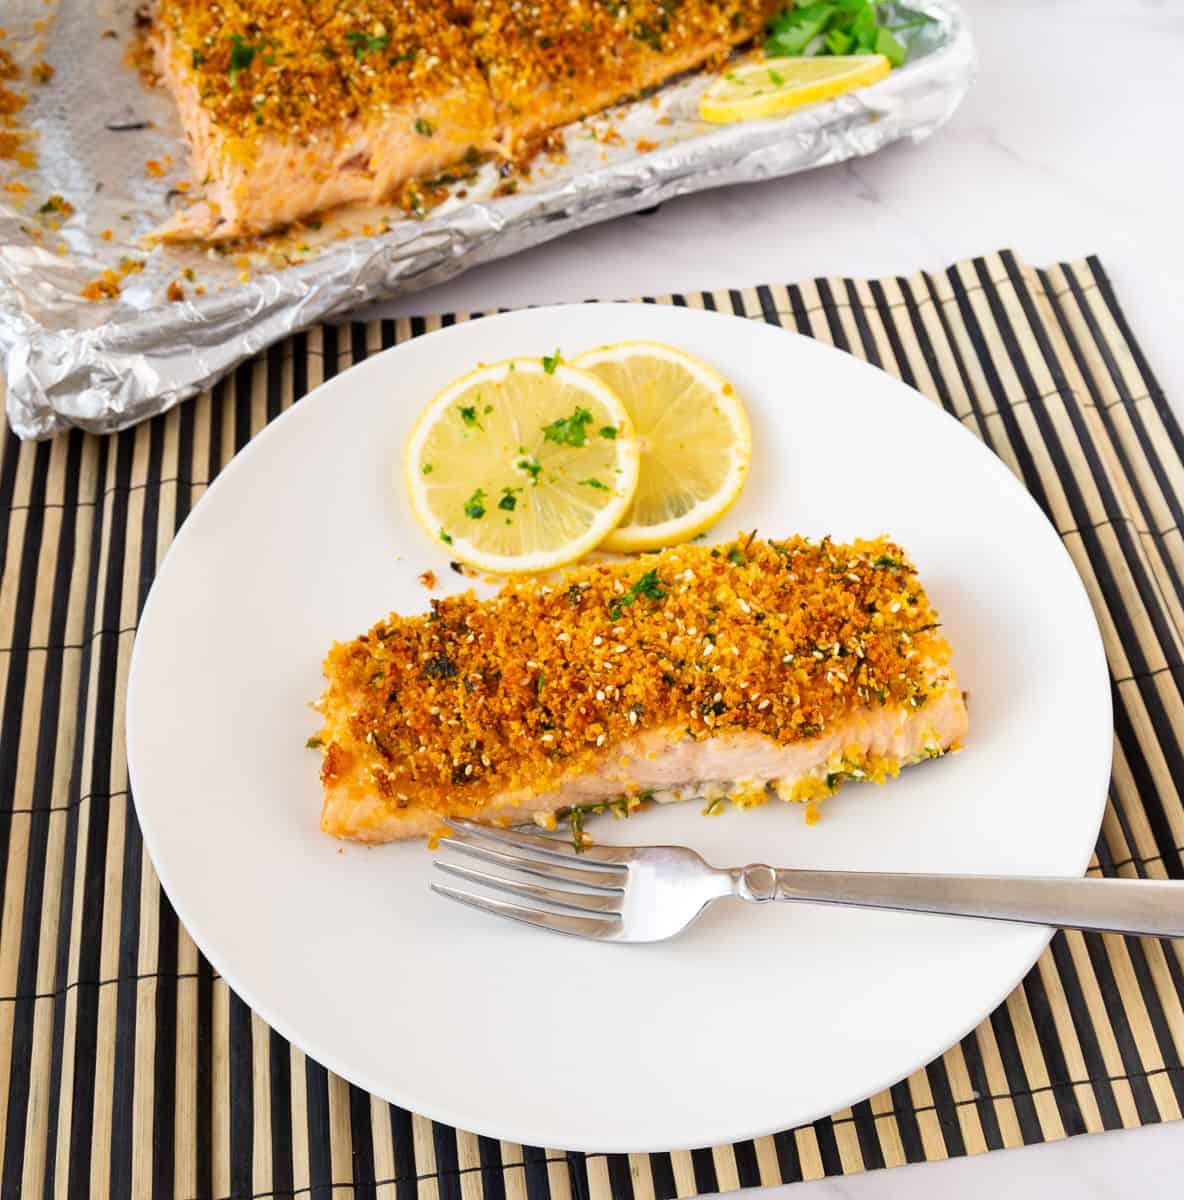 A plate with parmesan crusted salmon.